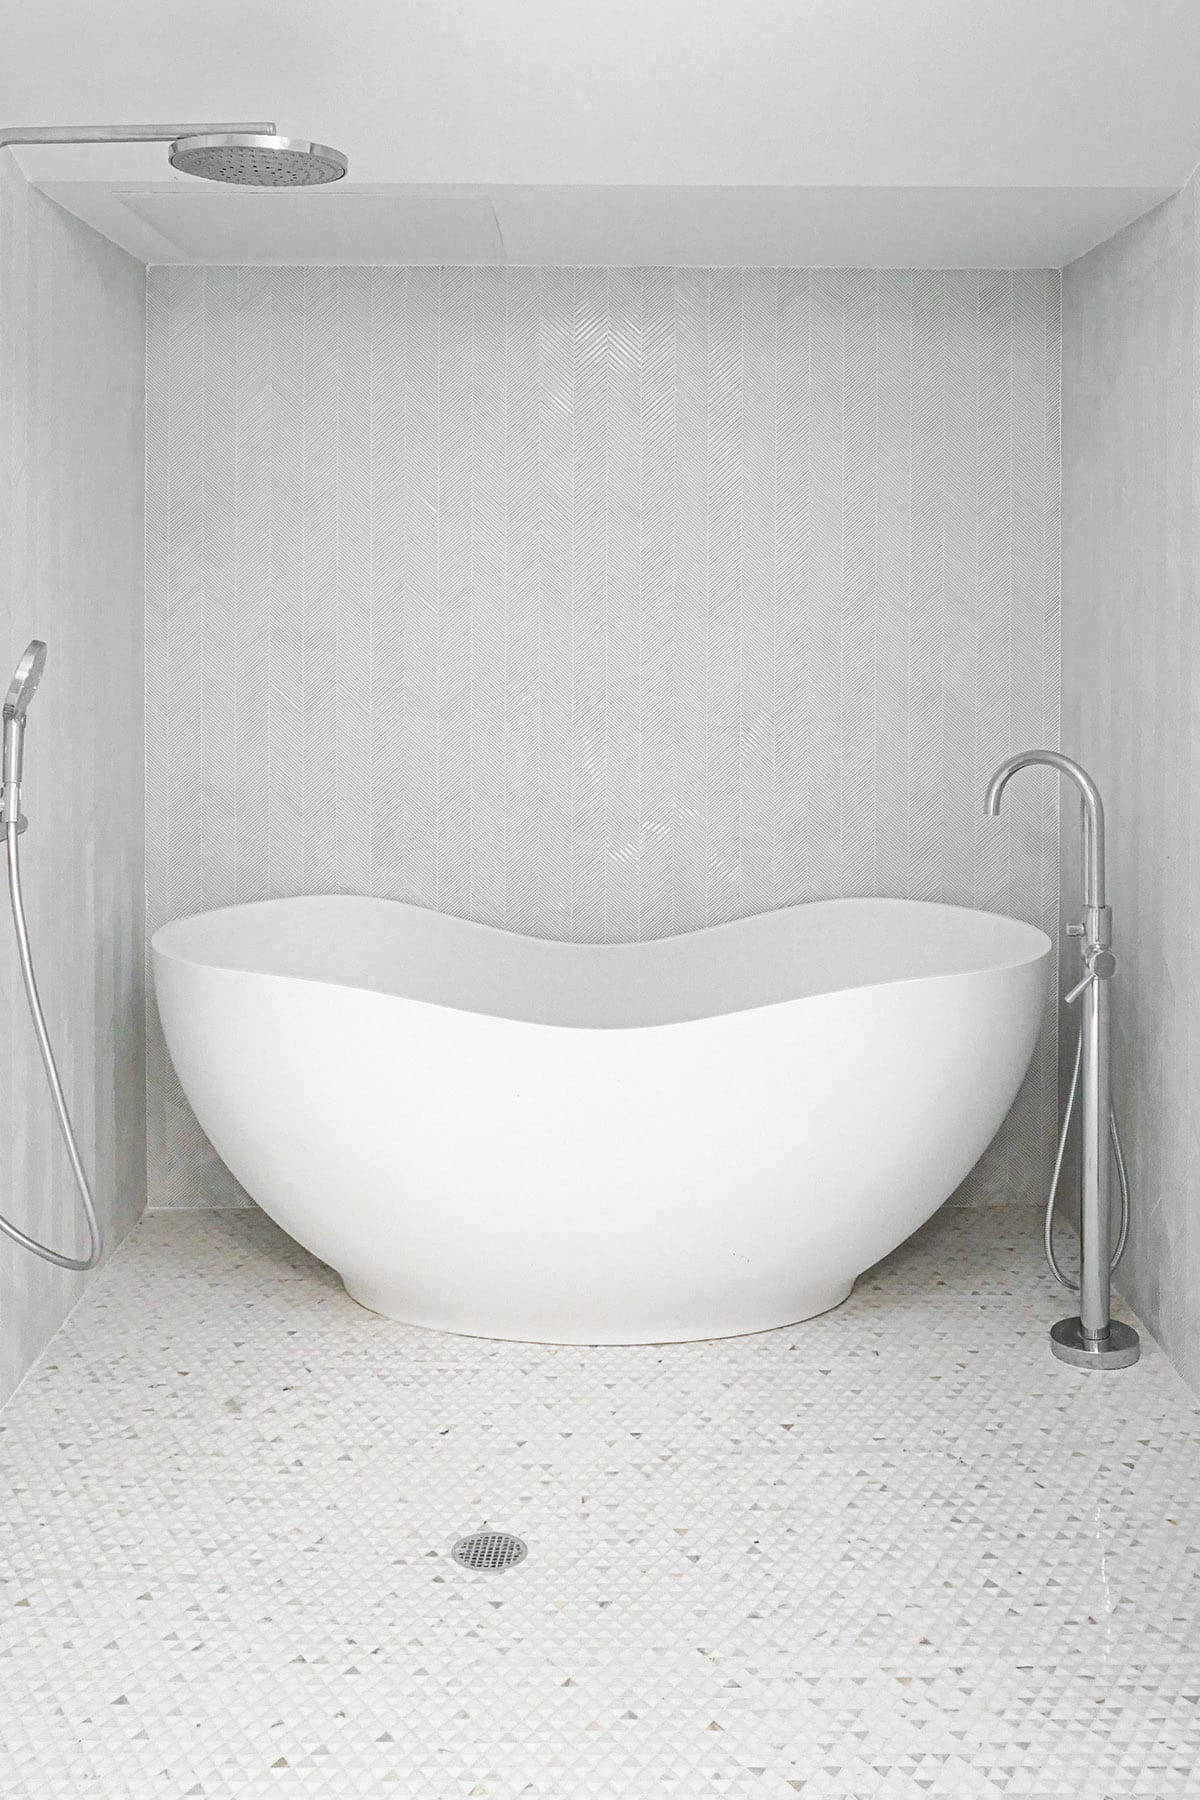 Tribeca Loft Bathroom Design Freestanding Tub